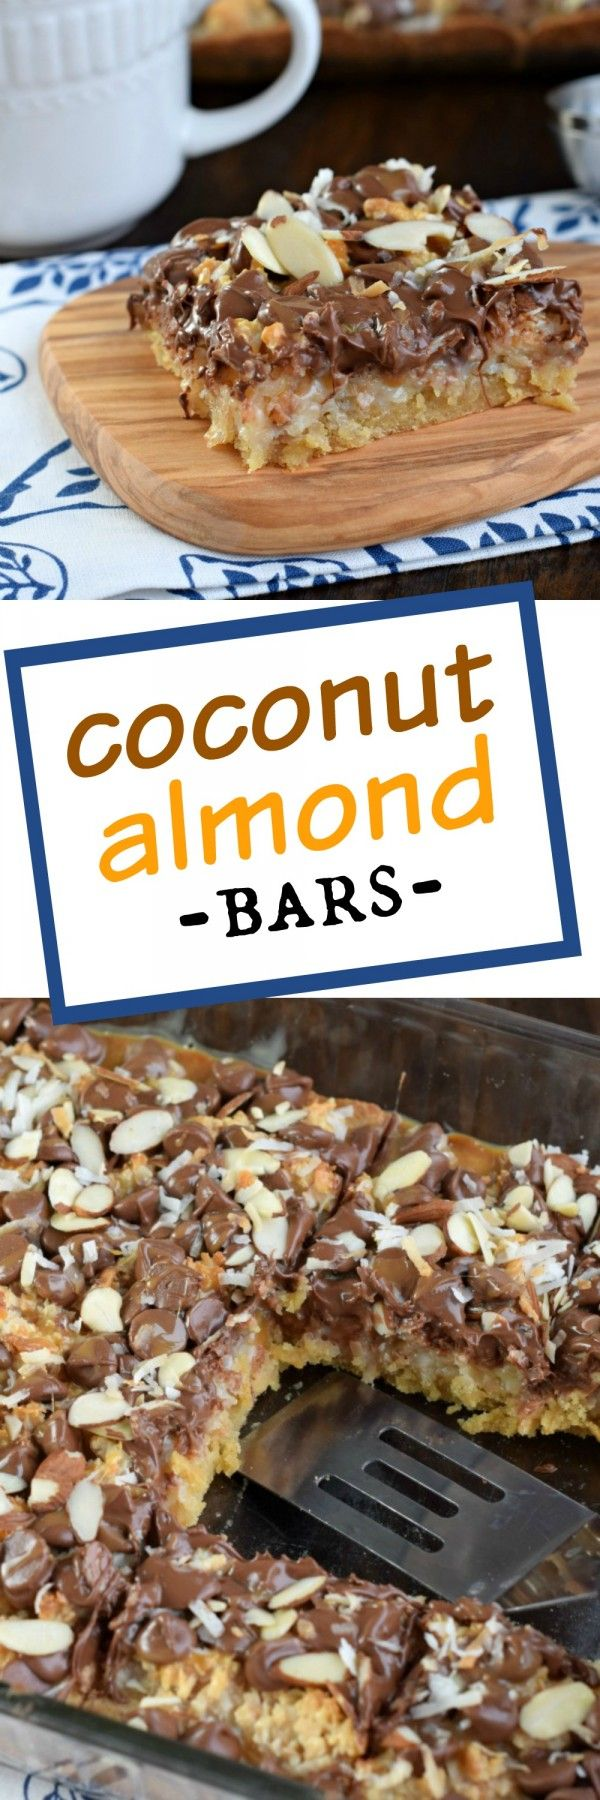 These Coconut Almond Bars are a delightful homemade candy bar recipe filled with toasted coconut and topped with chocolate, caramel, and crunchy almonds!